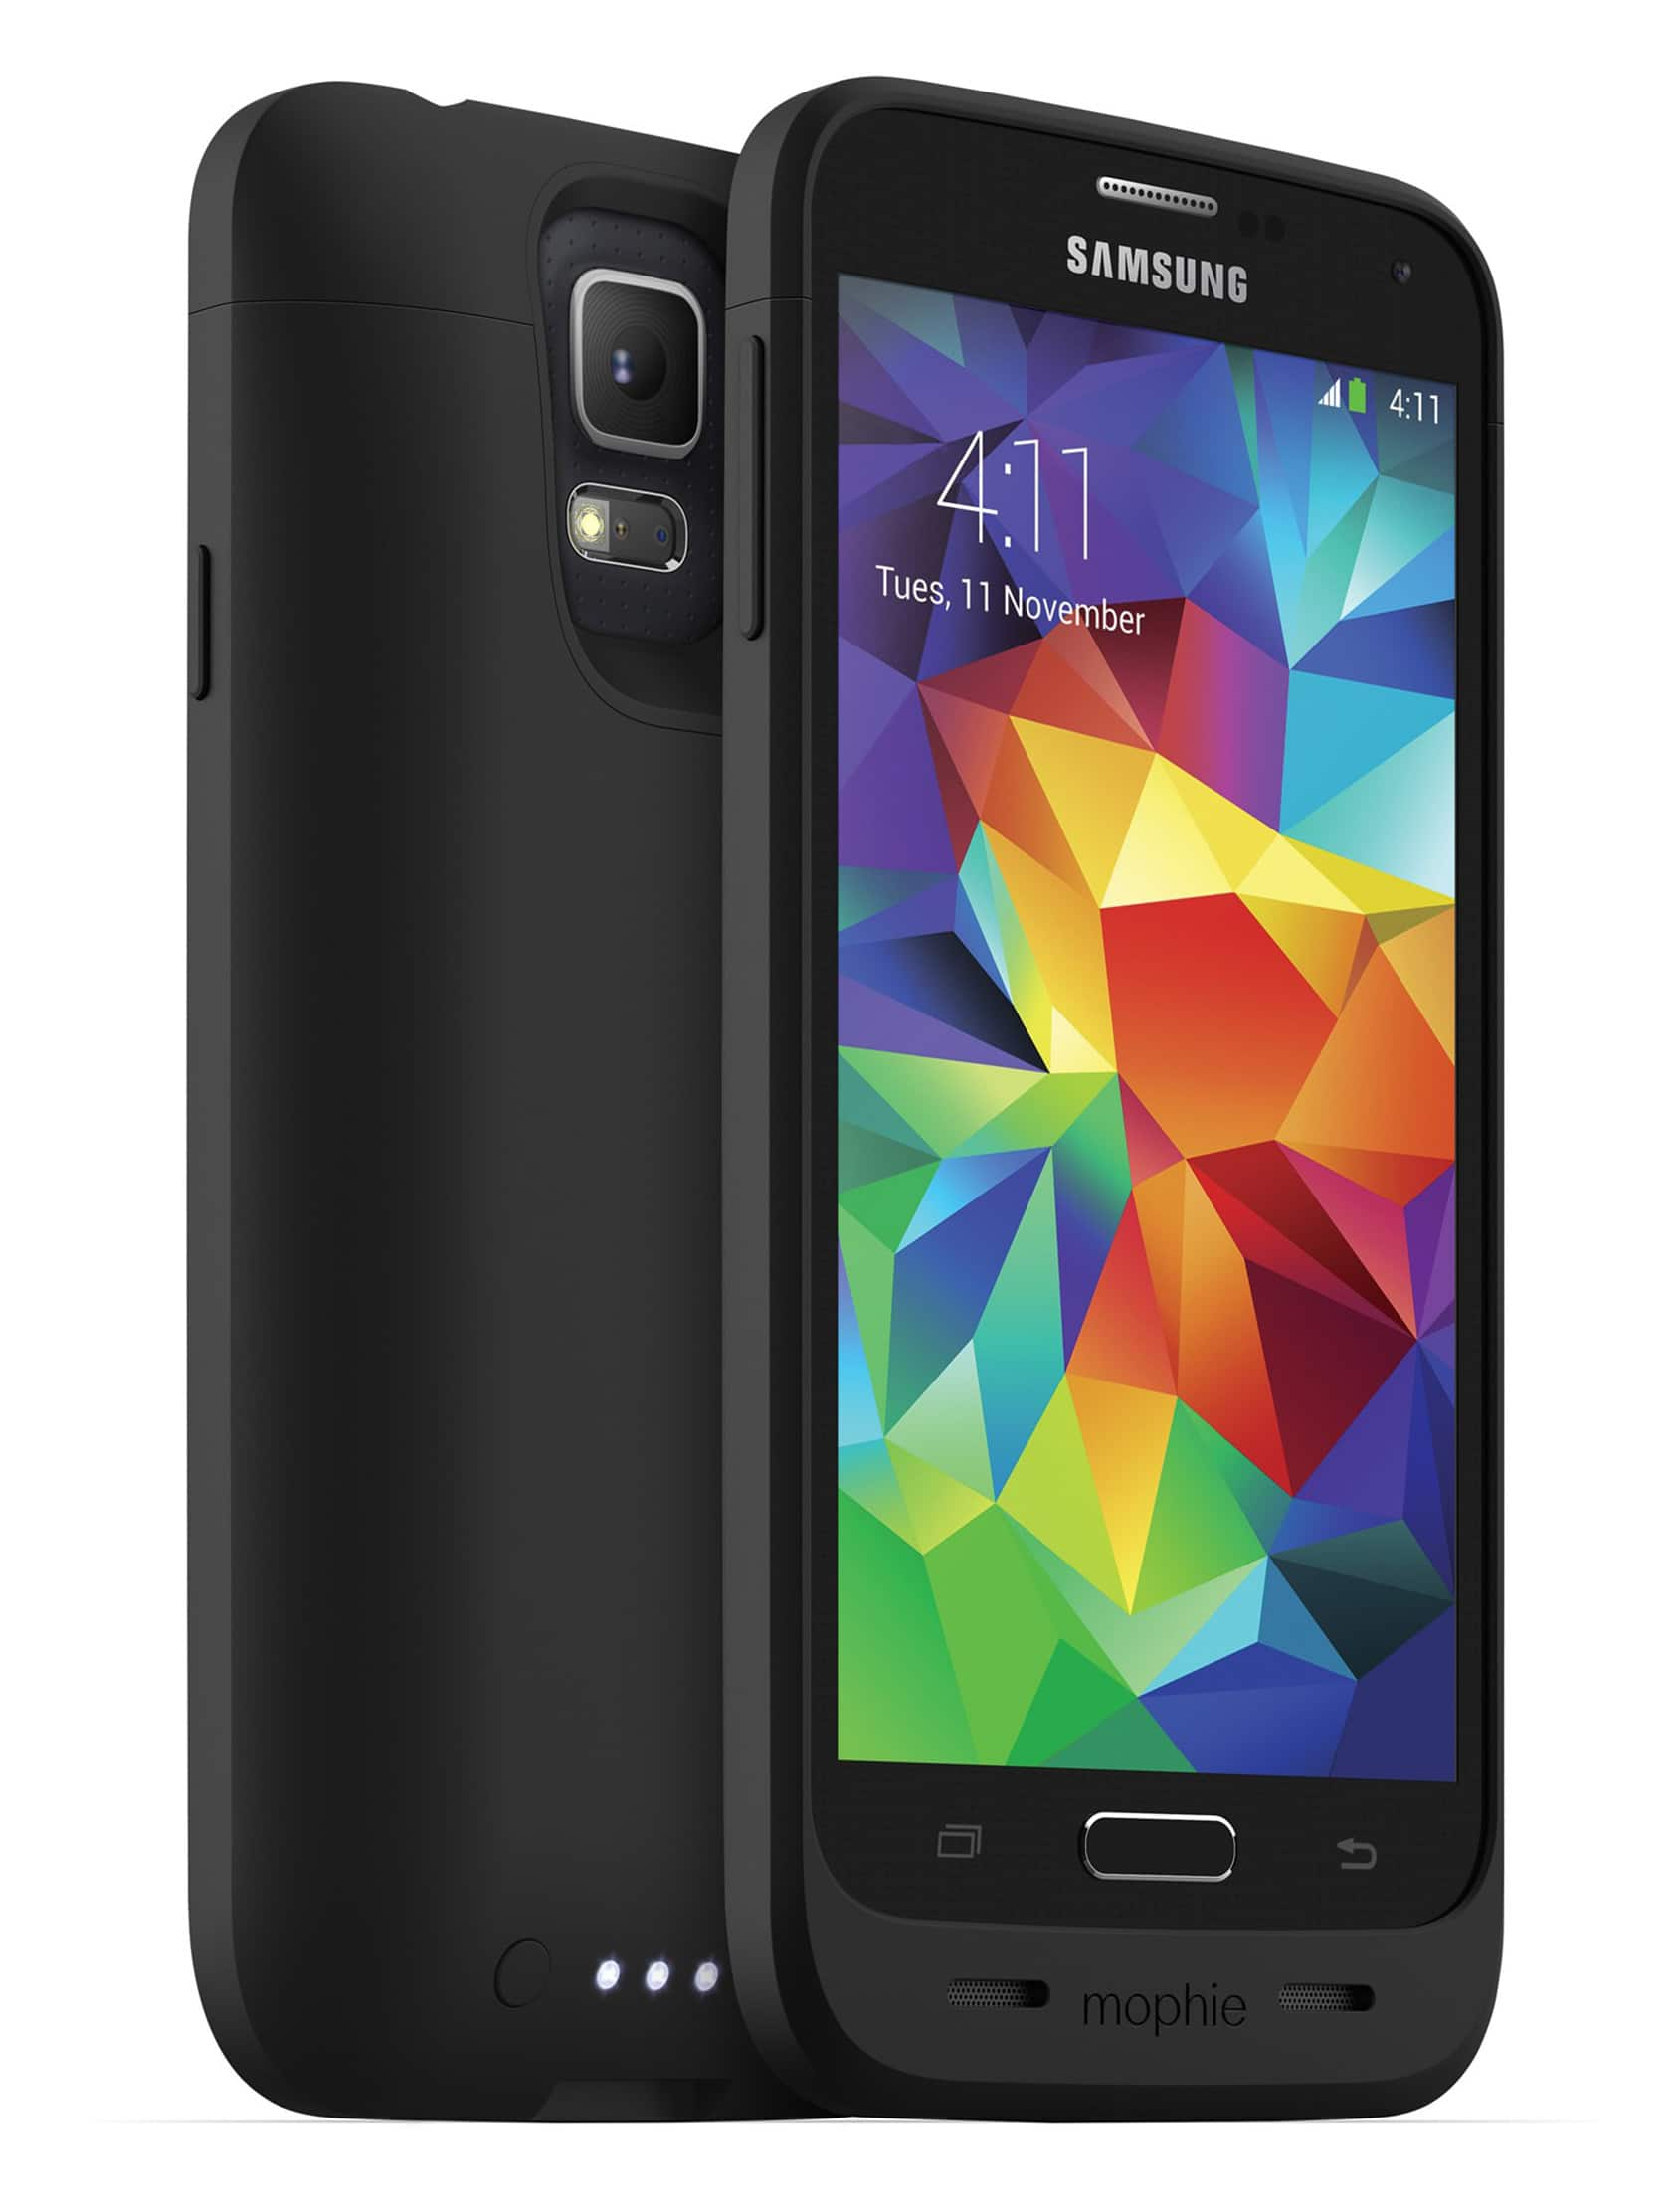 Mophie Juice Pack 3000mAh Battery Case for Samsung Galaxy S5 - $19.99 + fs @ eBay (or 2 for $35)